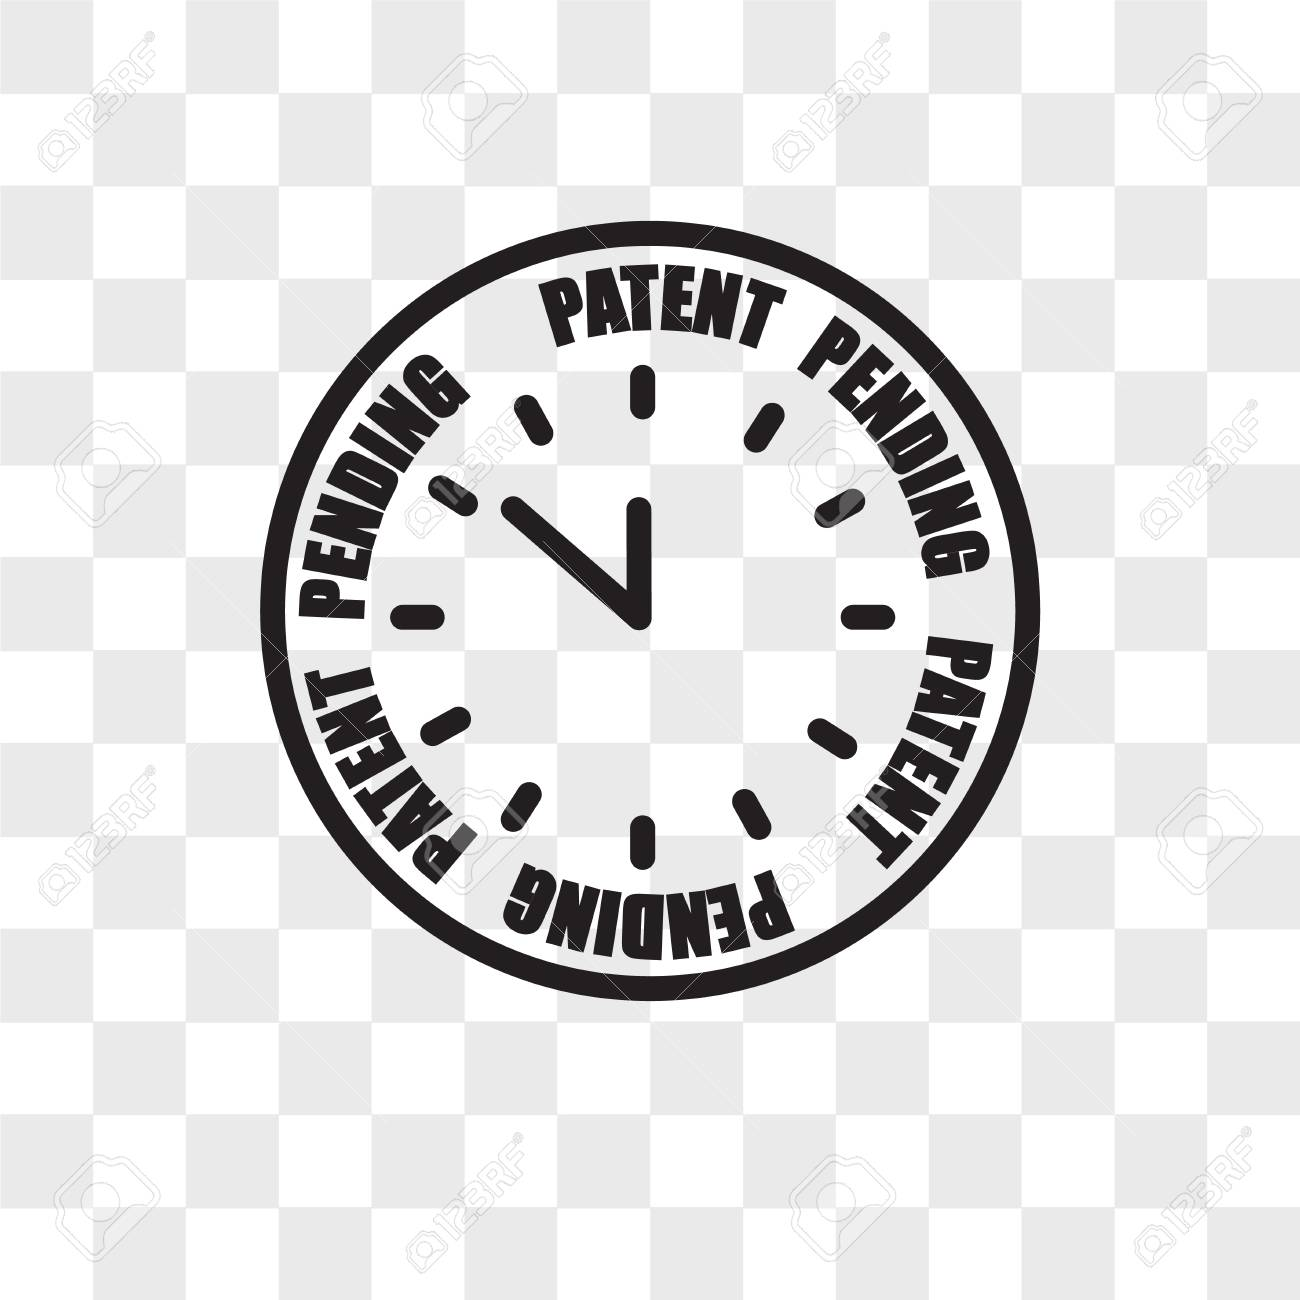 Patent Pending Vector Icon Isolated On Transparent Background 1300x1300